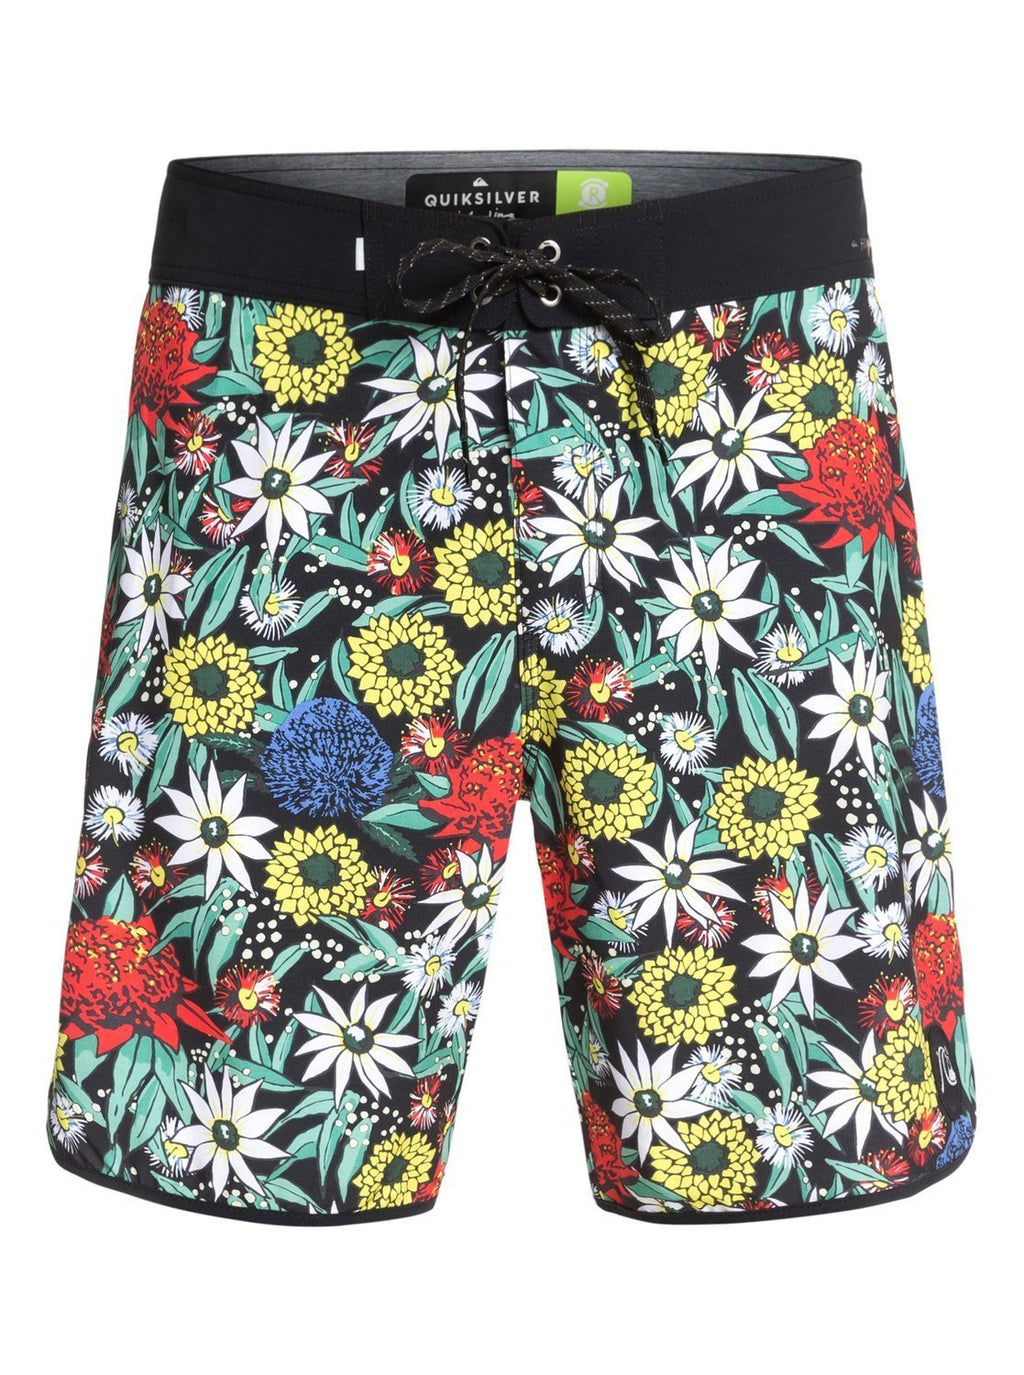 -Quiksilver- Men's Apparel - Boardshorts 30 / Gardenia Z-Quiksilver - Highline Bush Bandit 19